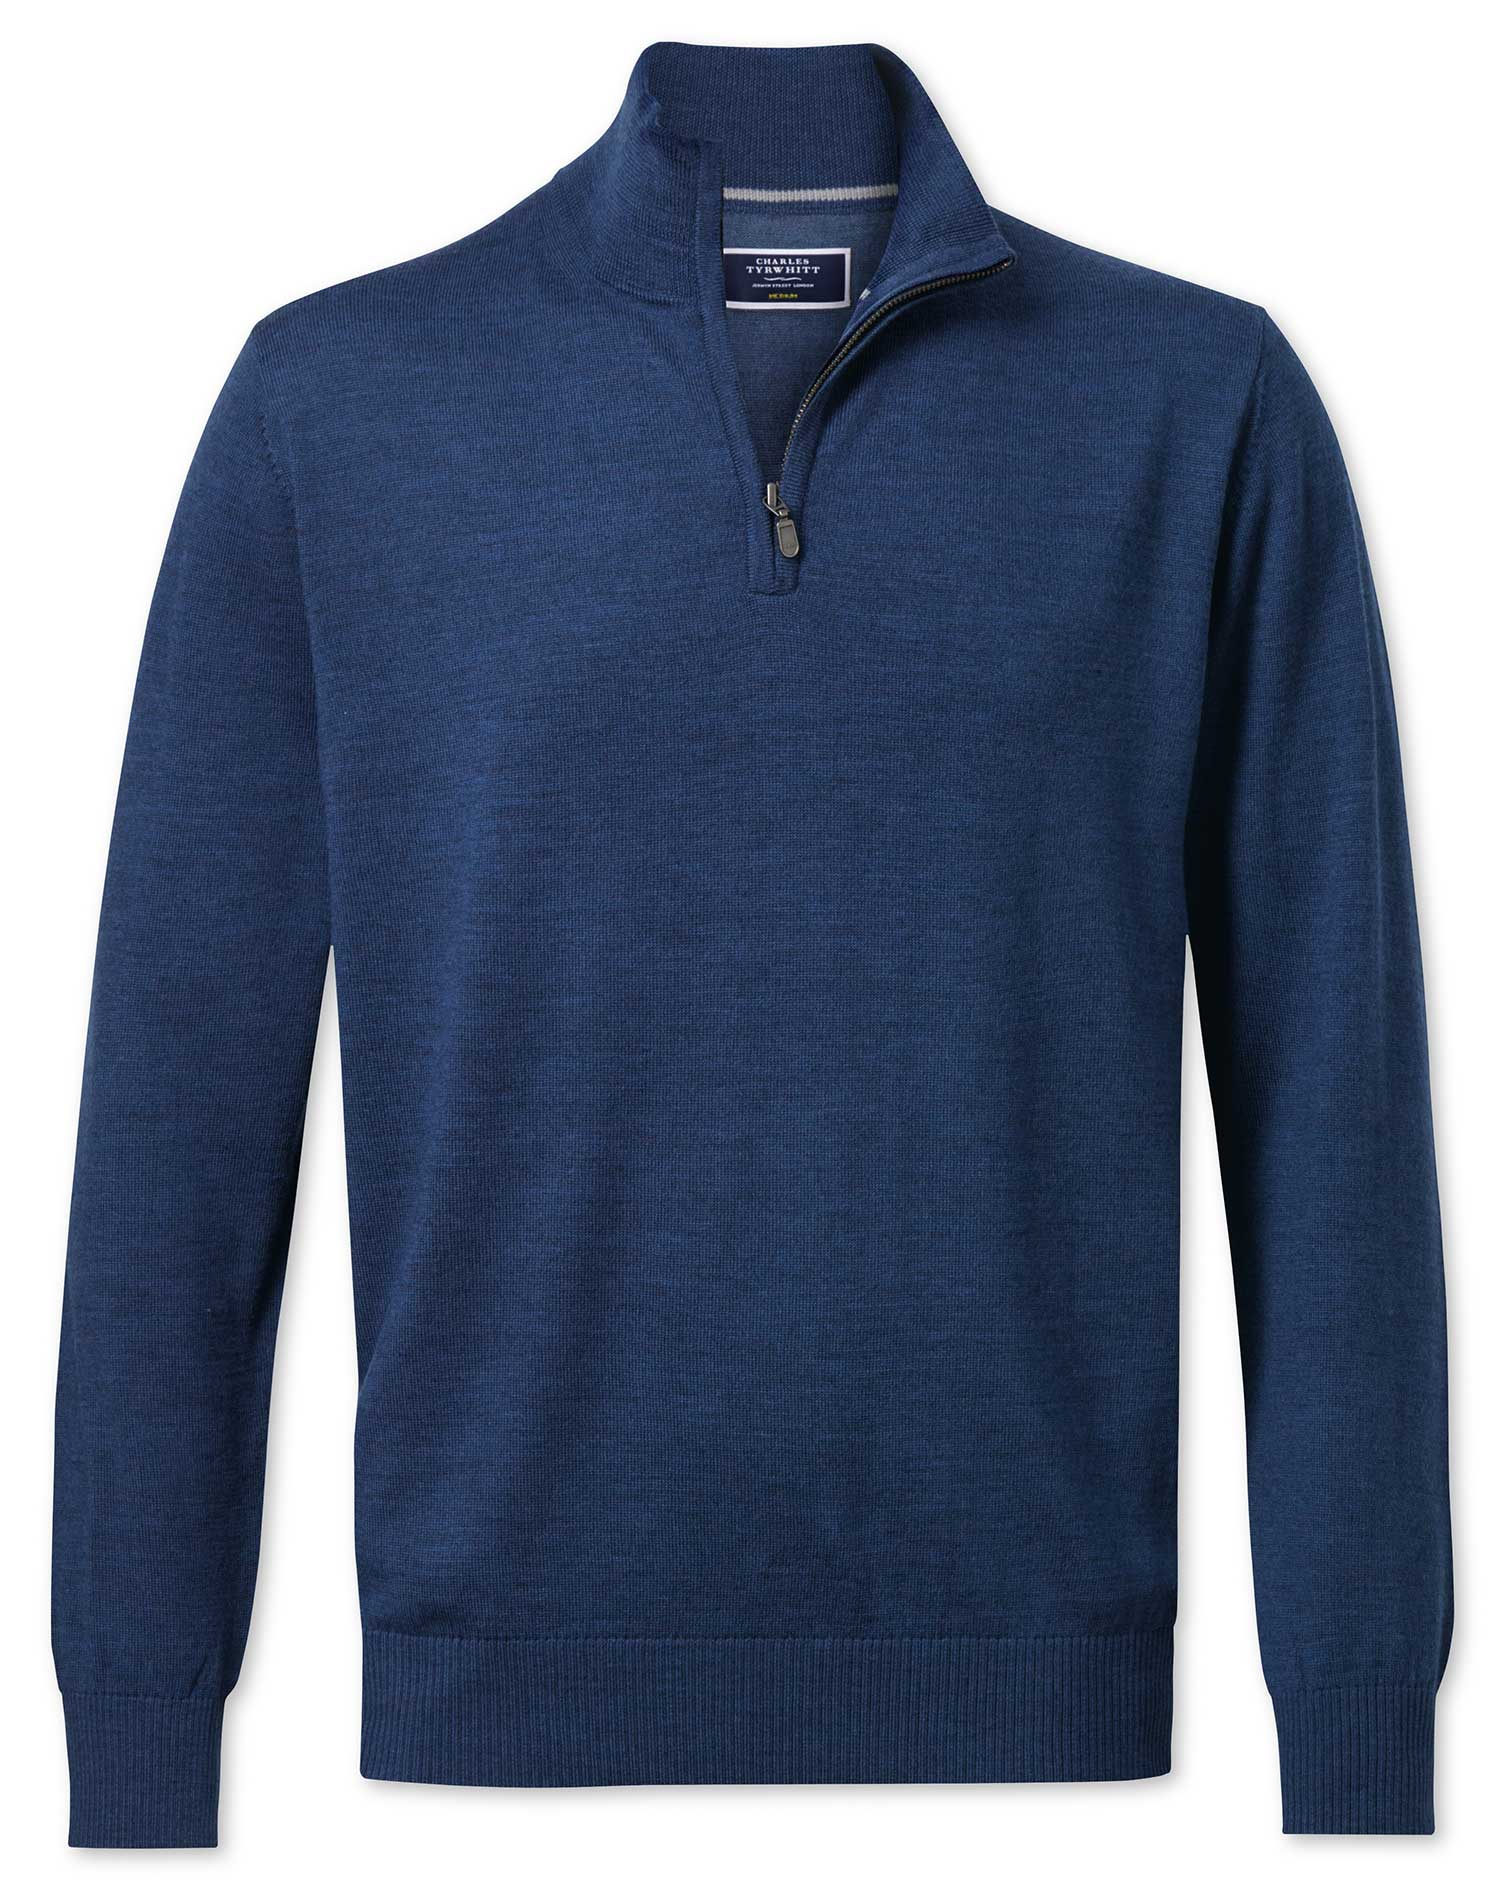 Mid Blue Merino Wool Zip Neck Jumper Size XXL by Charles Tyrwhitt